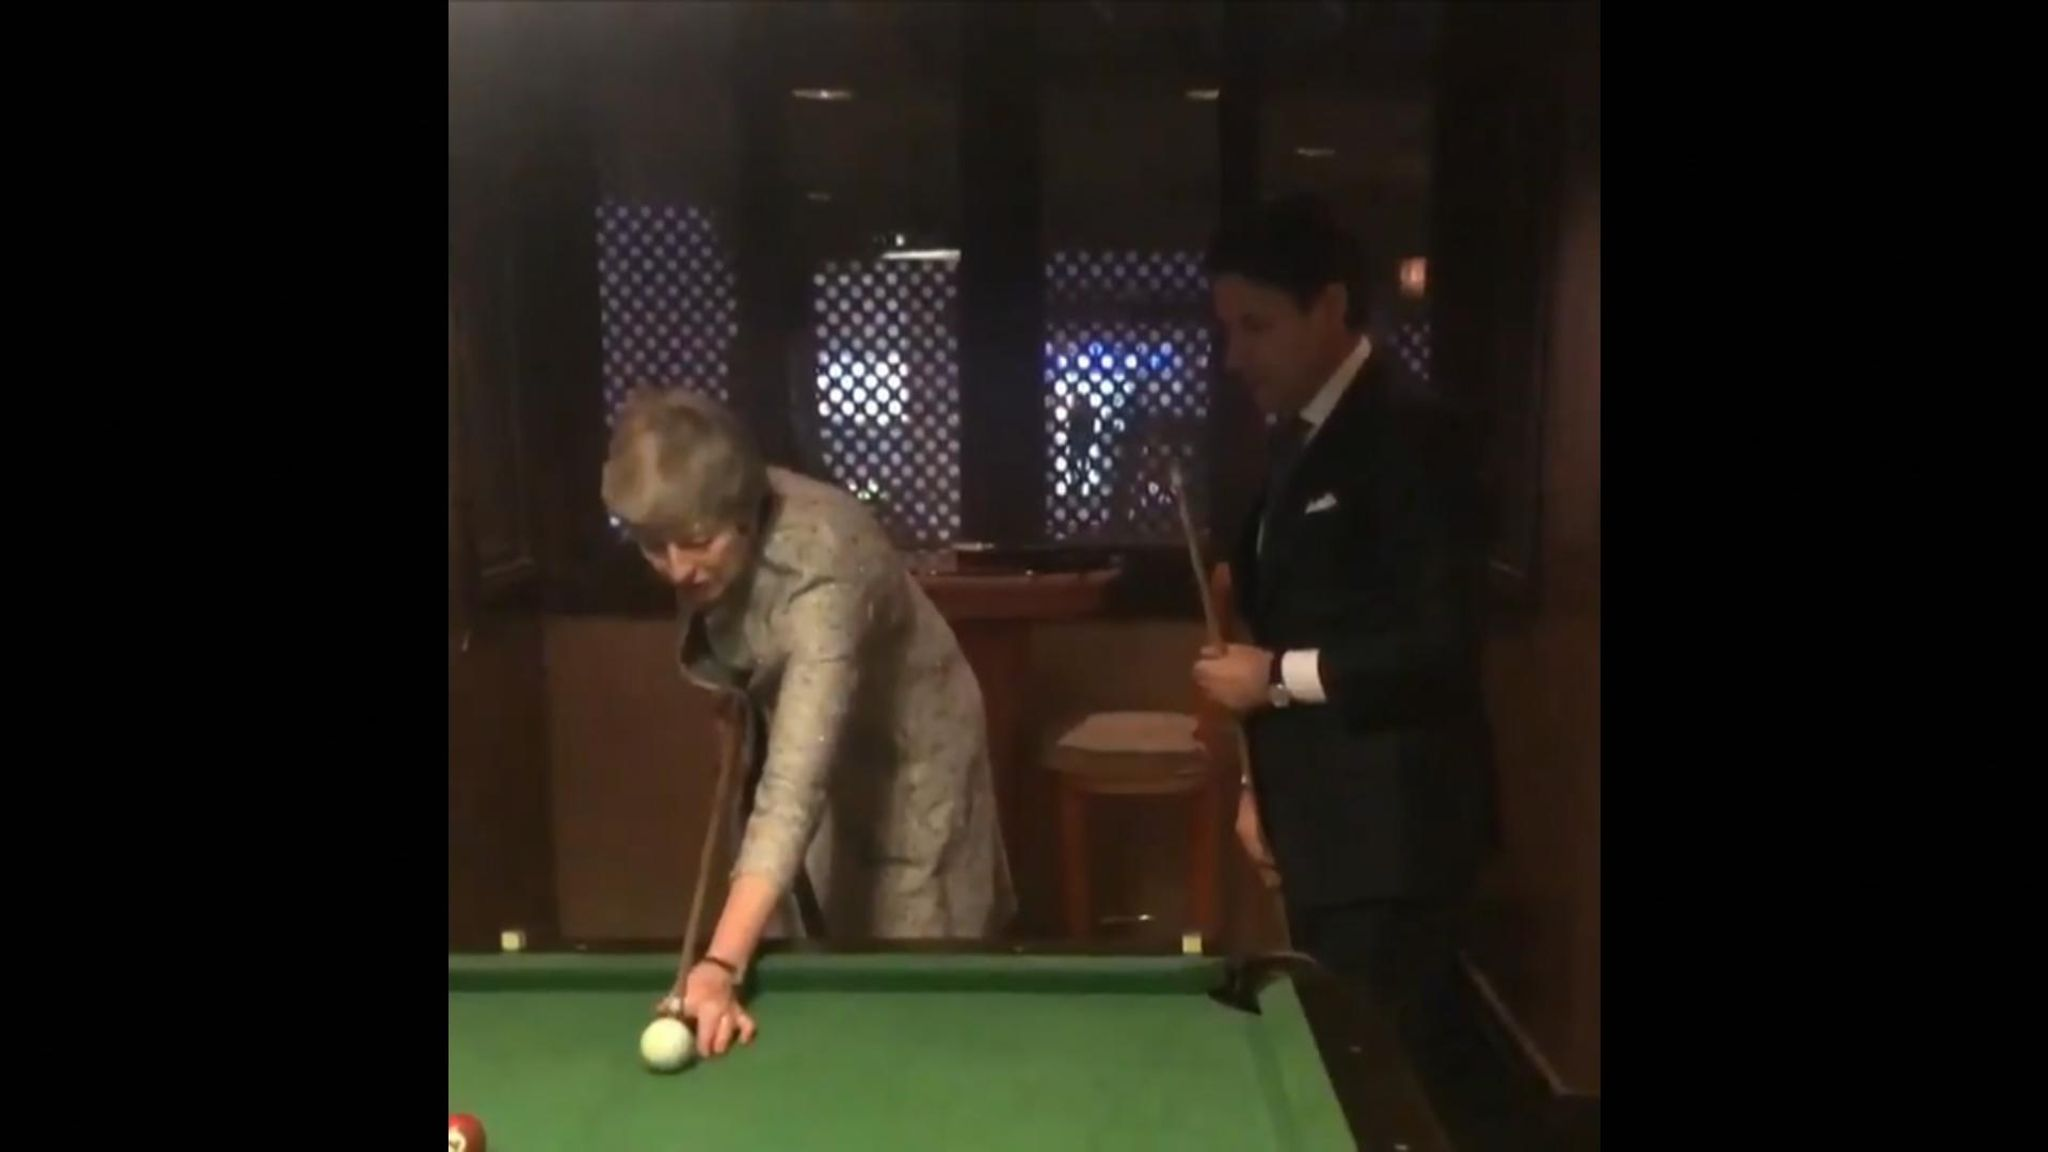 Italian Prime Minister Giuseppe Conte played pool with Theresa May while  they were attending an EU-Arab League summit in Egypt